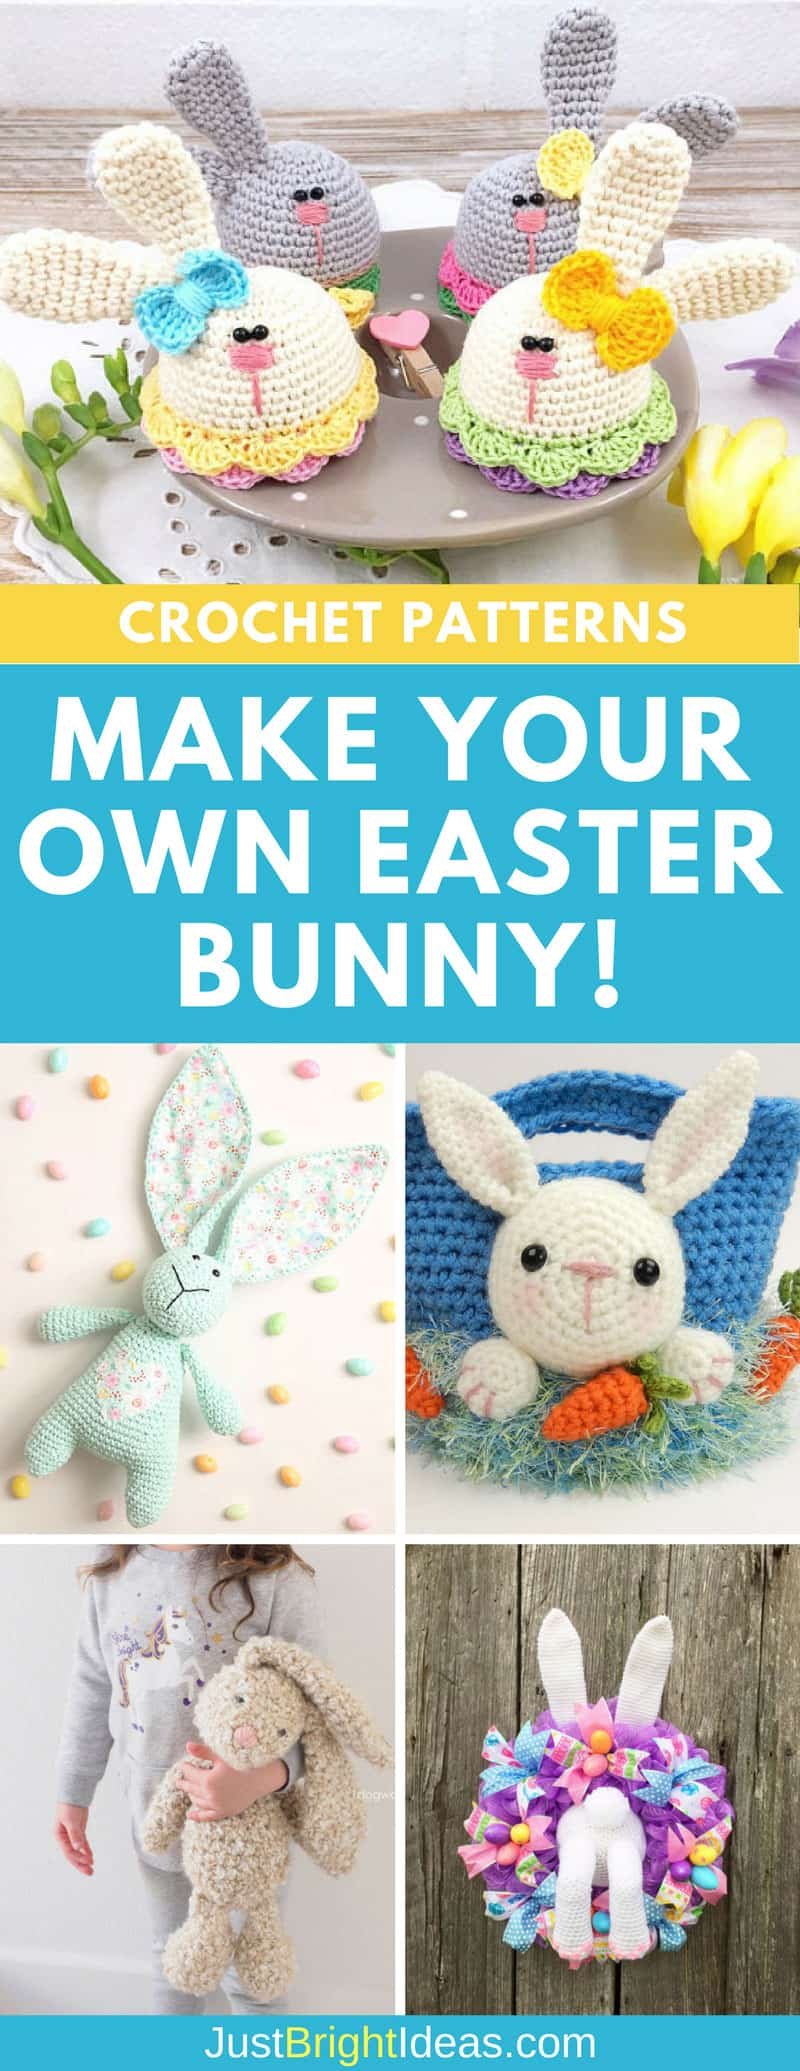 Easter Bunny Crochet patterns Pinterest